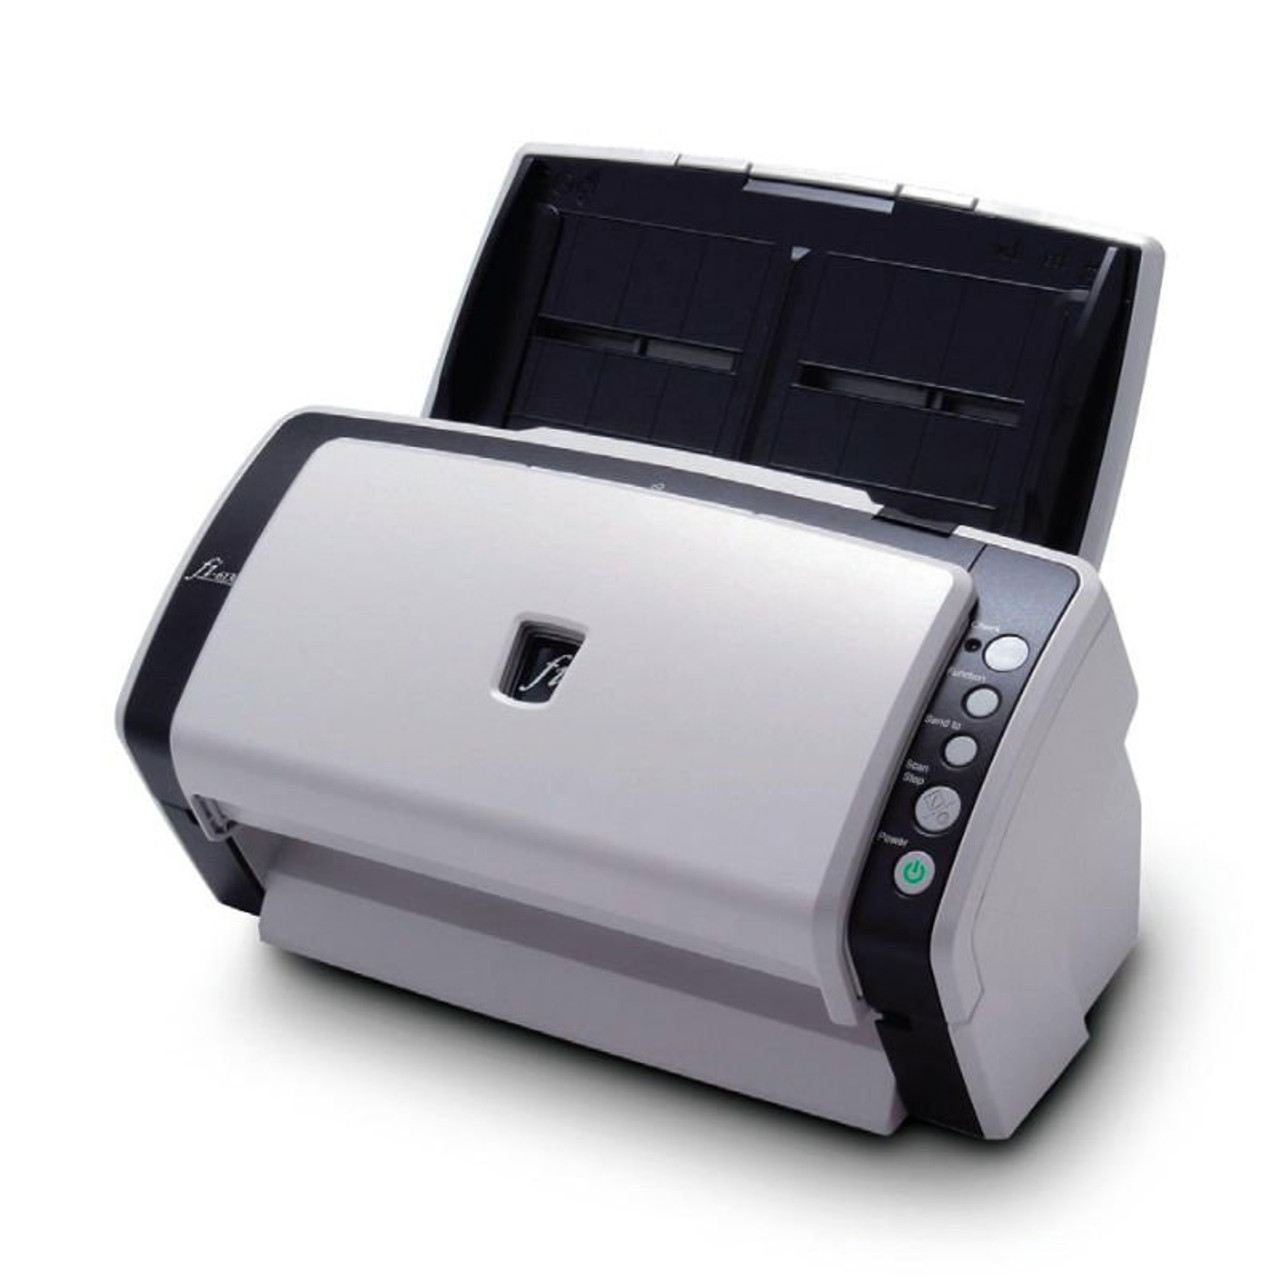 DOWNLOAD DRIVER: SCANNER FUJITSU FI-6130